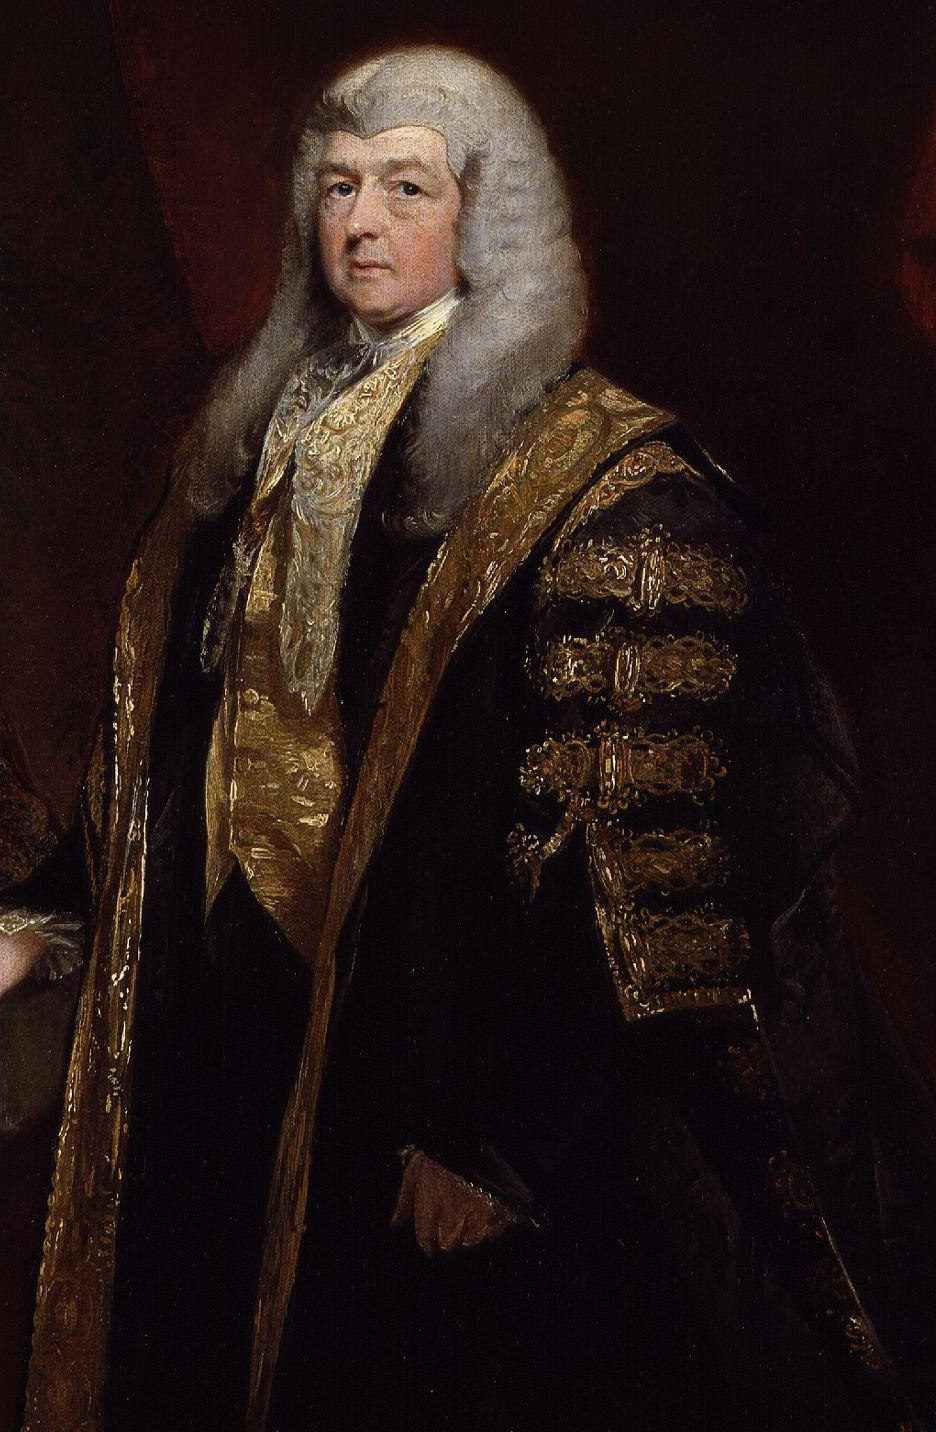 Charles Pepys, 1st Earl of Cottenham by Charles Robert Leslie cropped